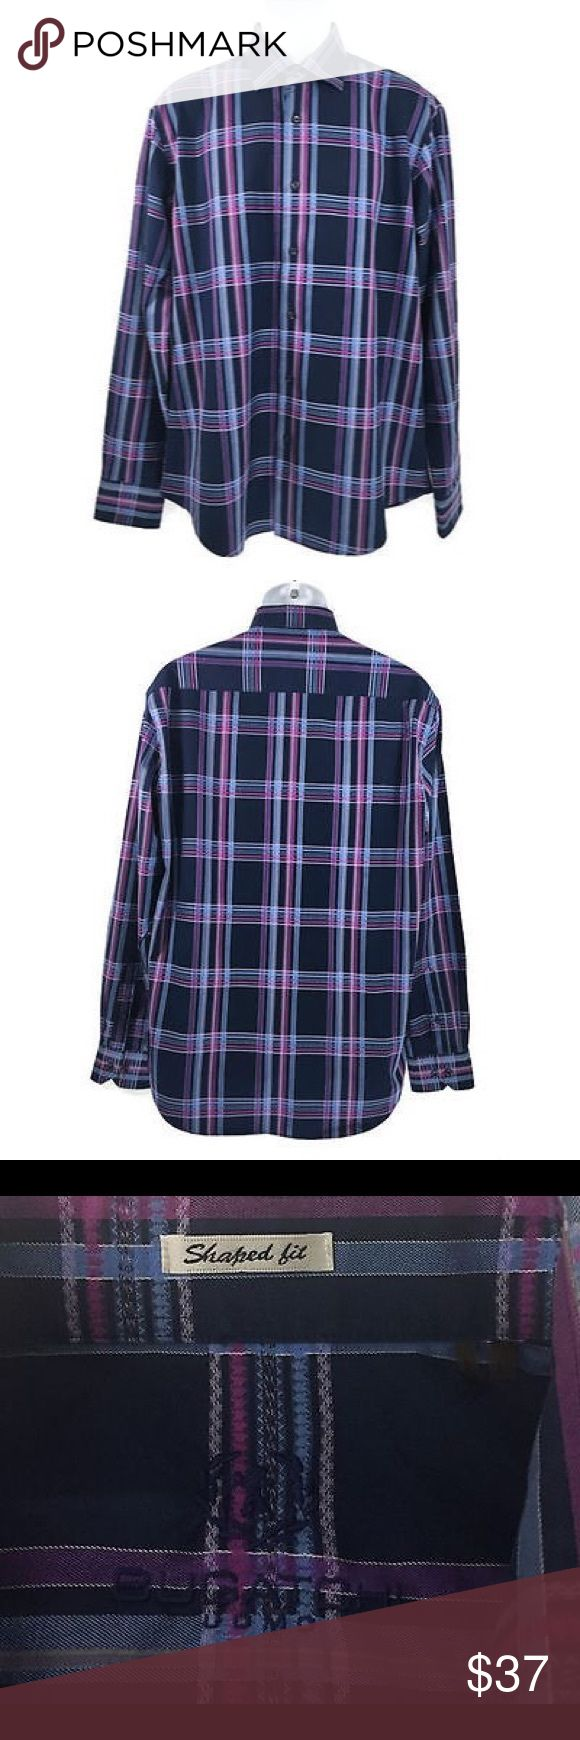 Bugatchi Uomo Shirt Shaped Fit Plaid Cotton Large In great condition. Measurements laying flat: shoulder to shoulder: 20 inches. Pit to pit: 23.5 inches. Length: 31 inches. Sleeve: 26 inches. Bugatchi Shirts Casual Button Down Shirts